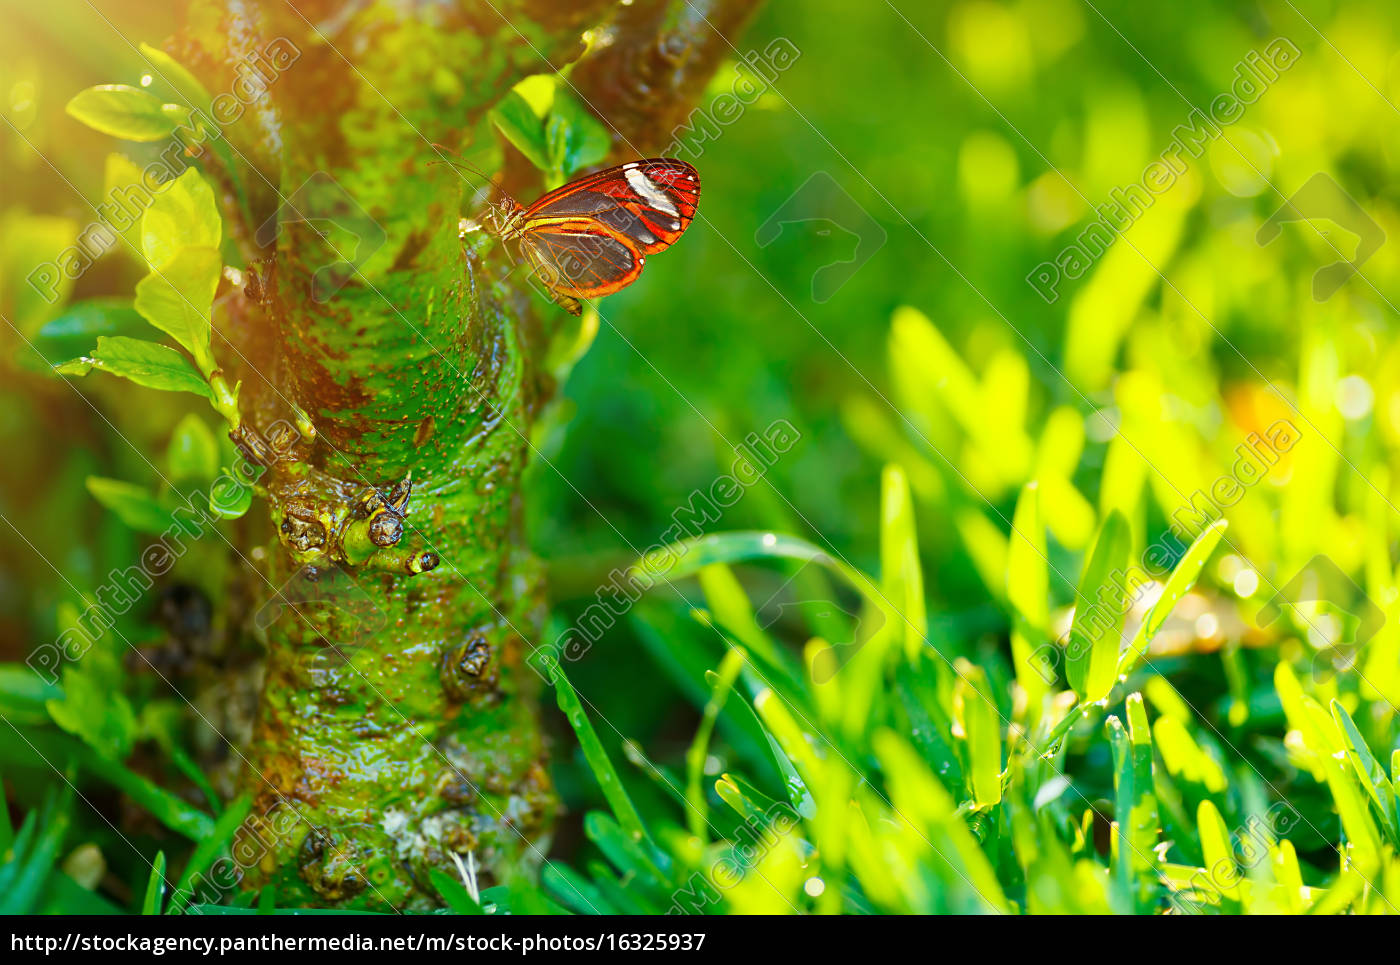 beautiful, butterfly, in, nature - 16325937